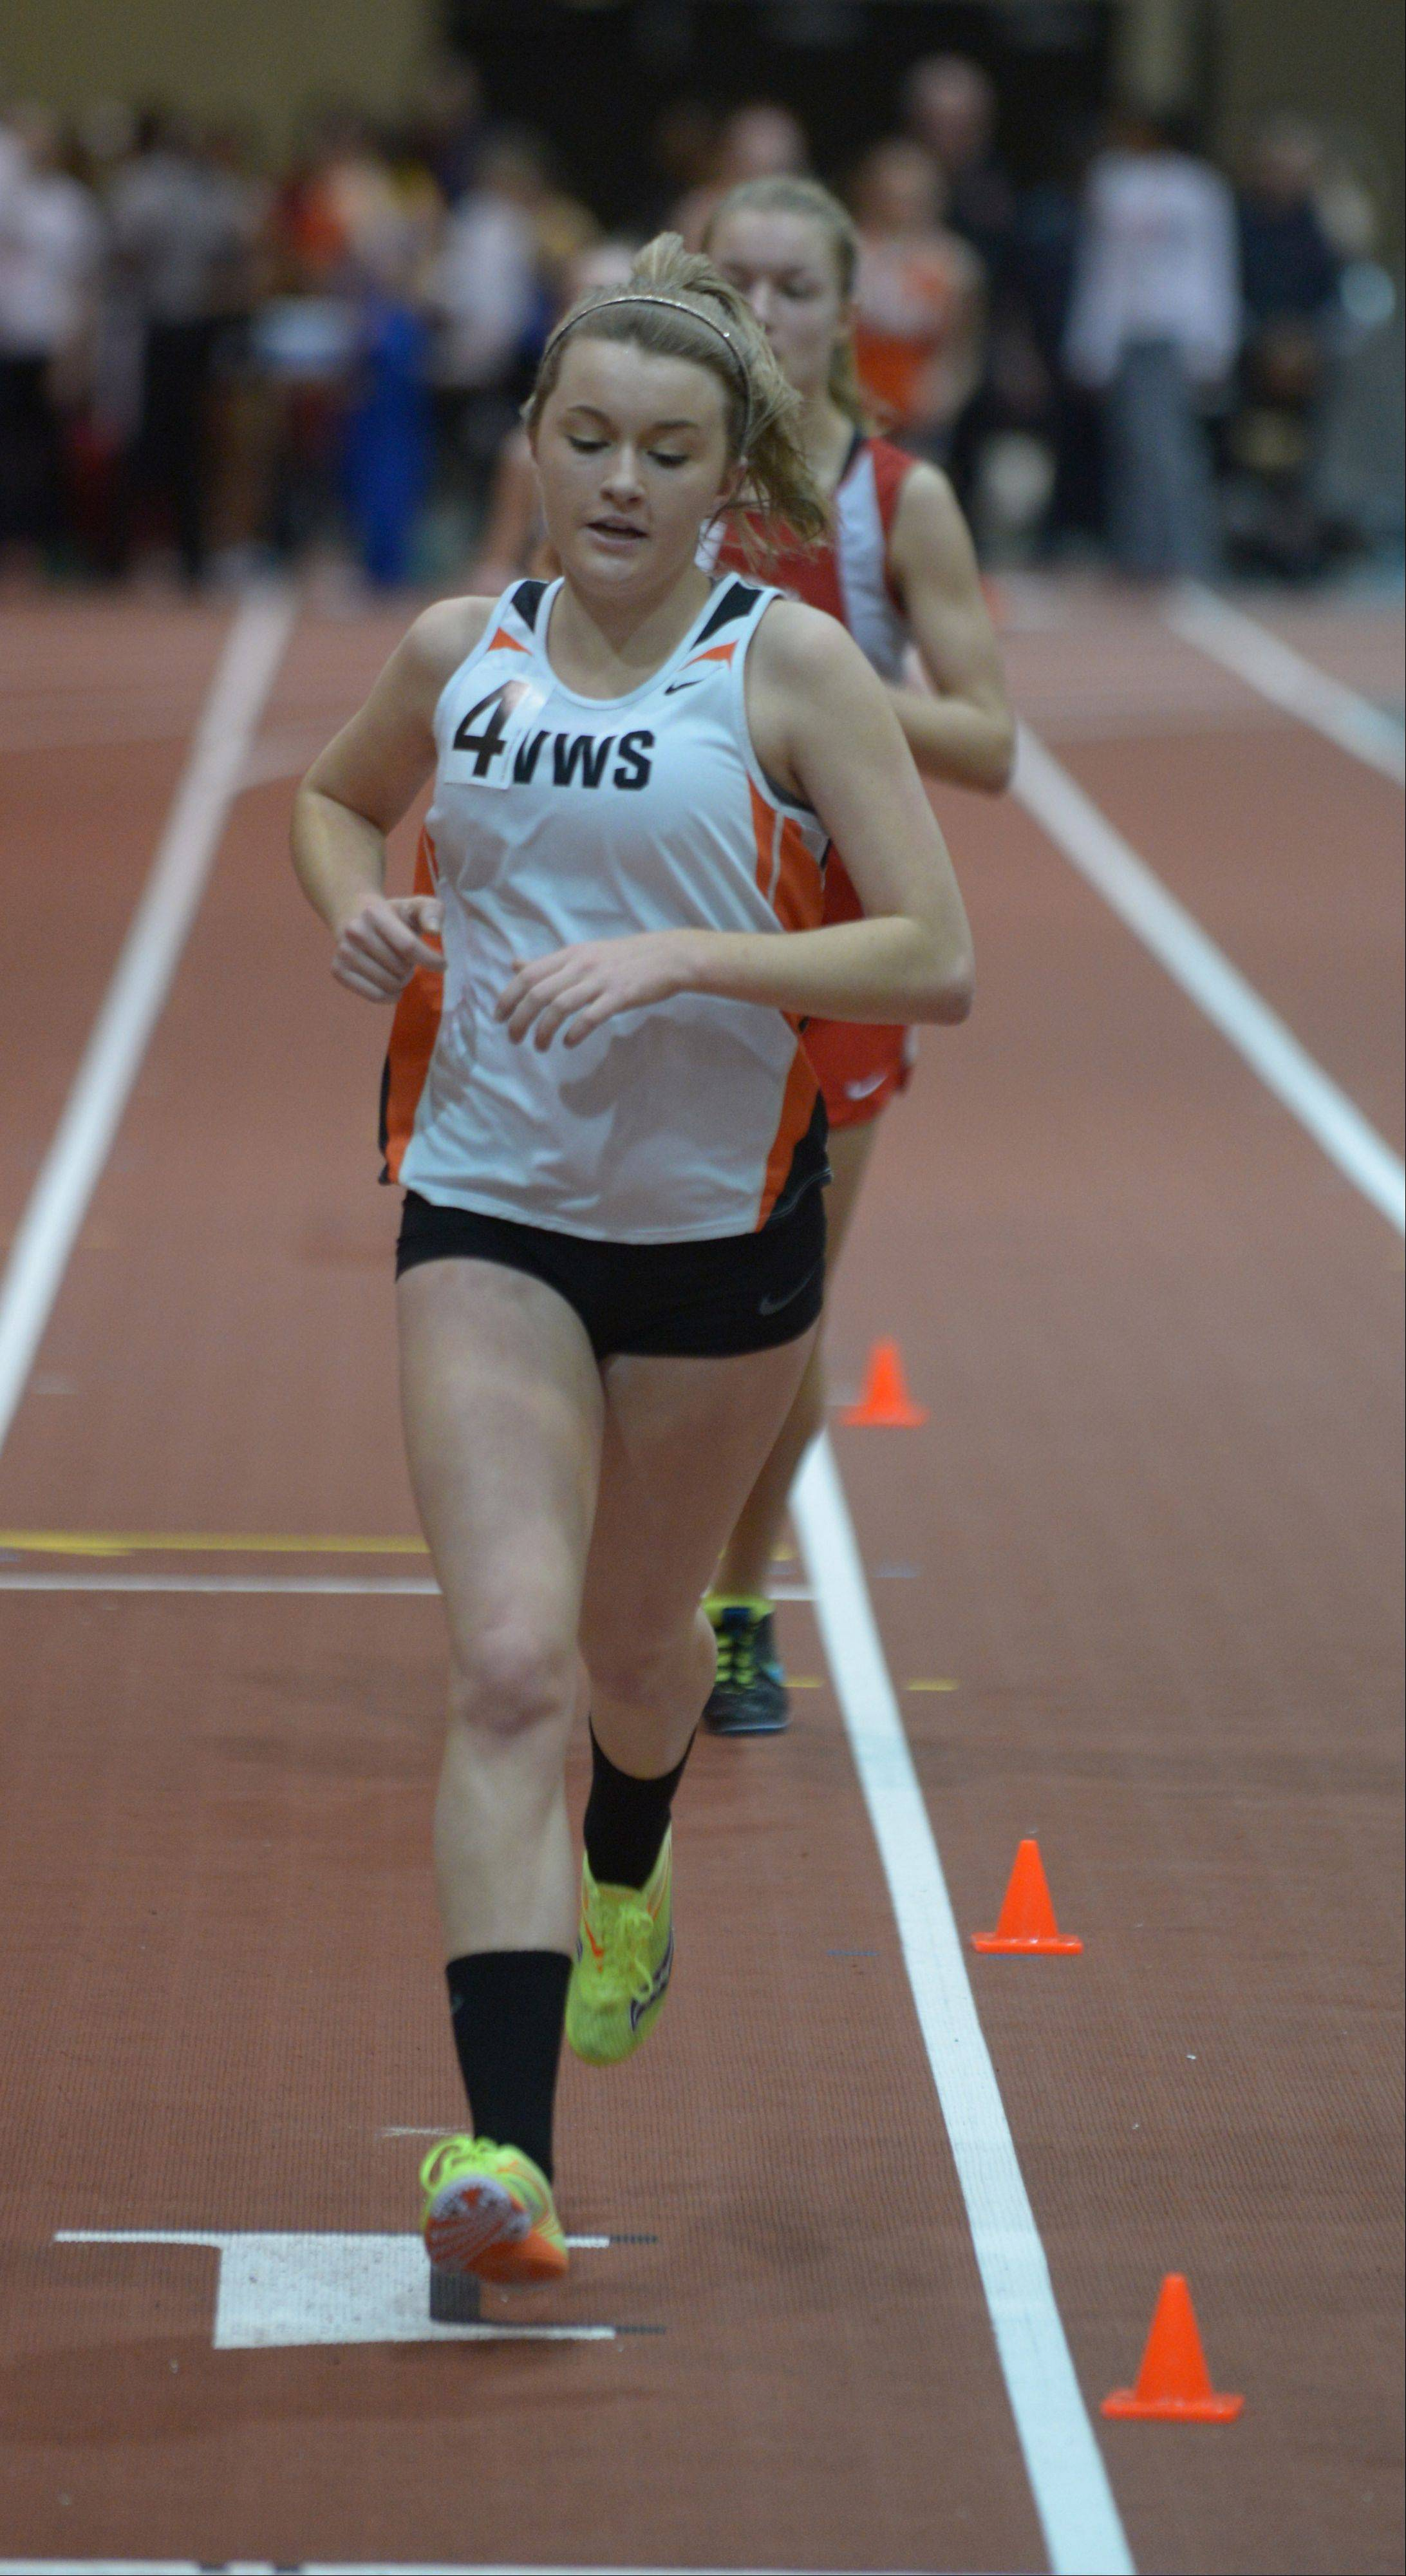 Kayla Kightlinger of Wheaton Warrenville South runs the 3200 during the DuPage Valley Conference girls indoor track meet at North Central College Thursday.